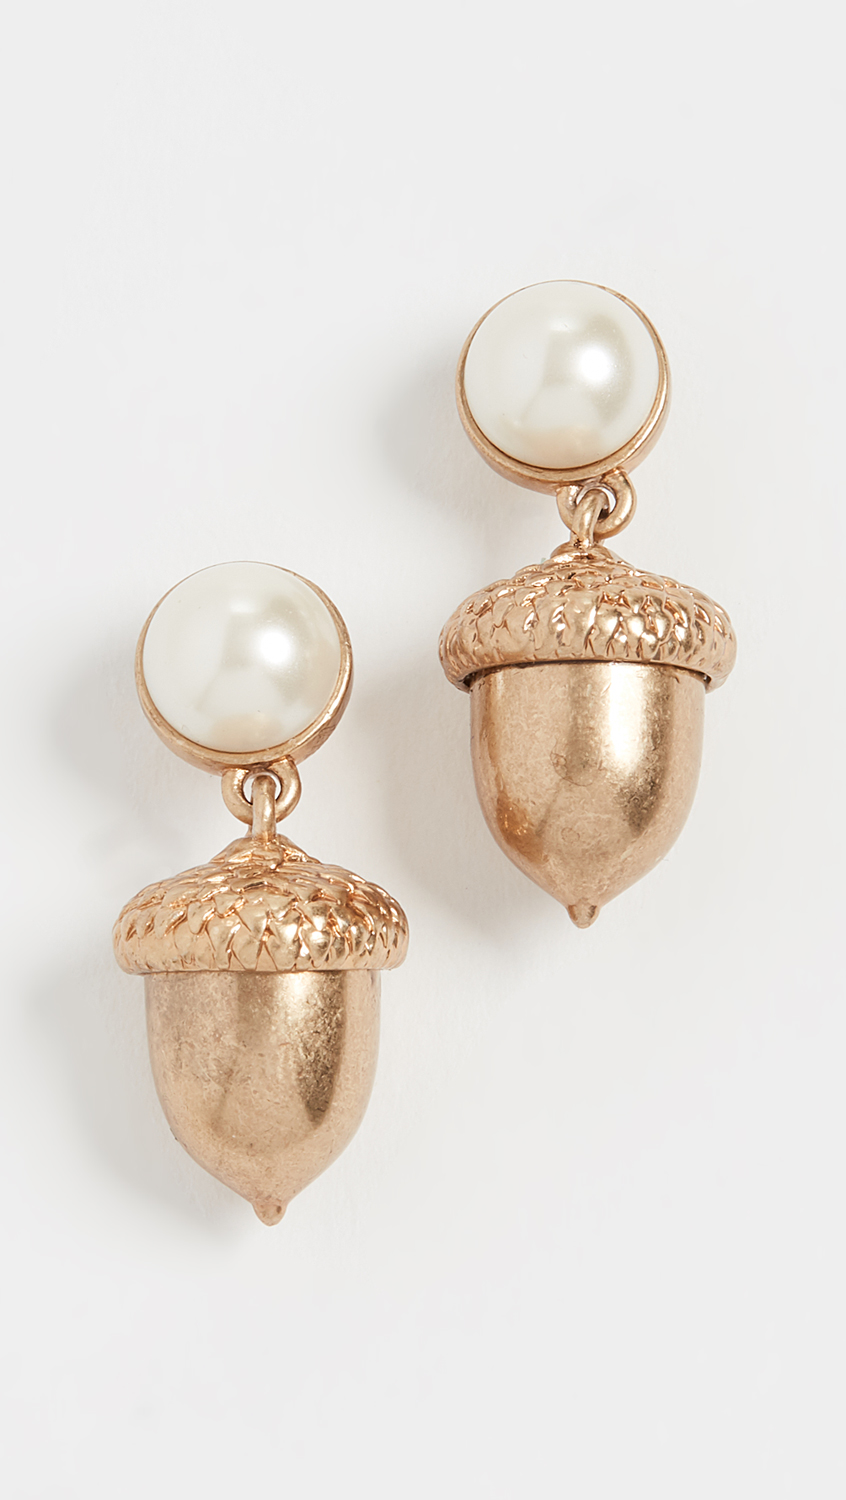 Antiqued Brass Pearl and Acorn Charm Earrings